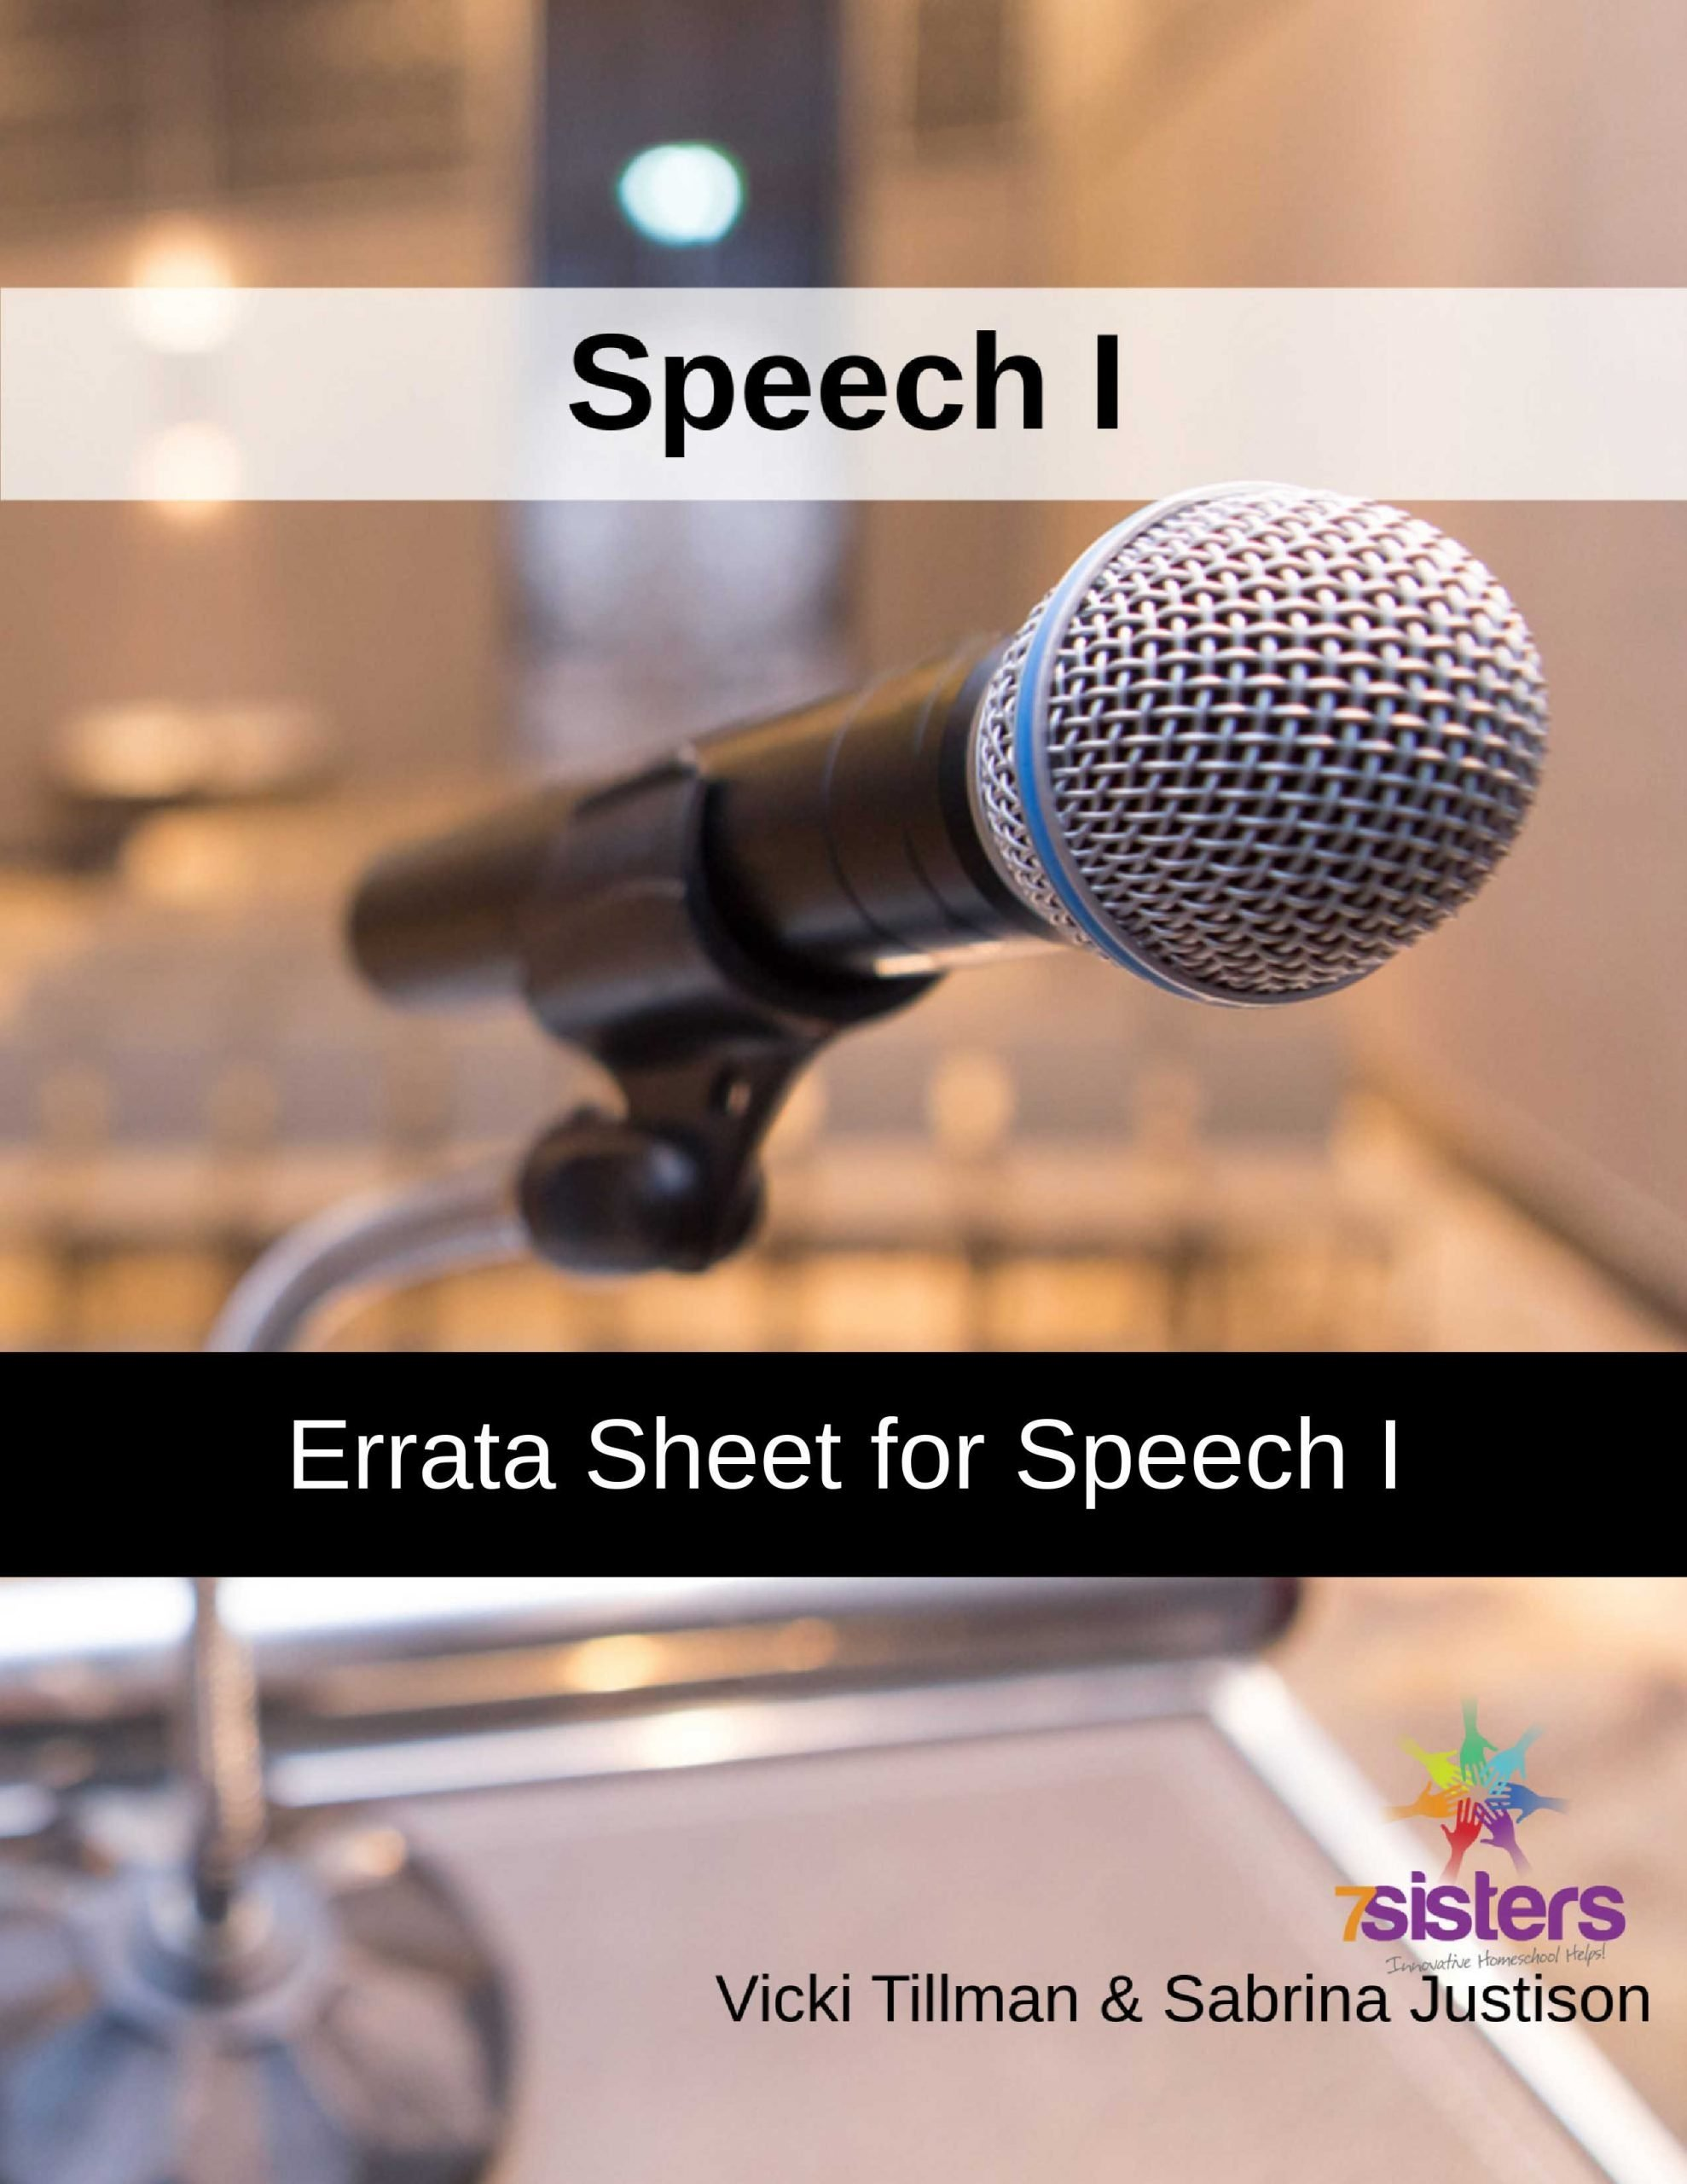 Errata Sheet for Speech I. This is simply some corrected links for 7Sisters Speech 1 curriculum. (Which, as you know, has LOTS of links!)